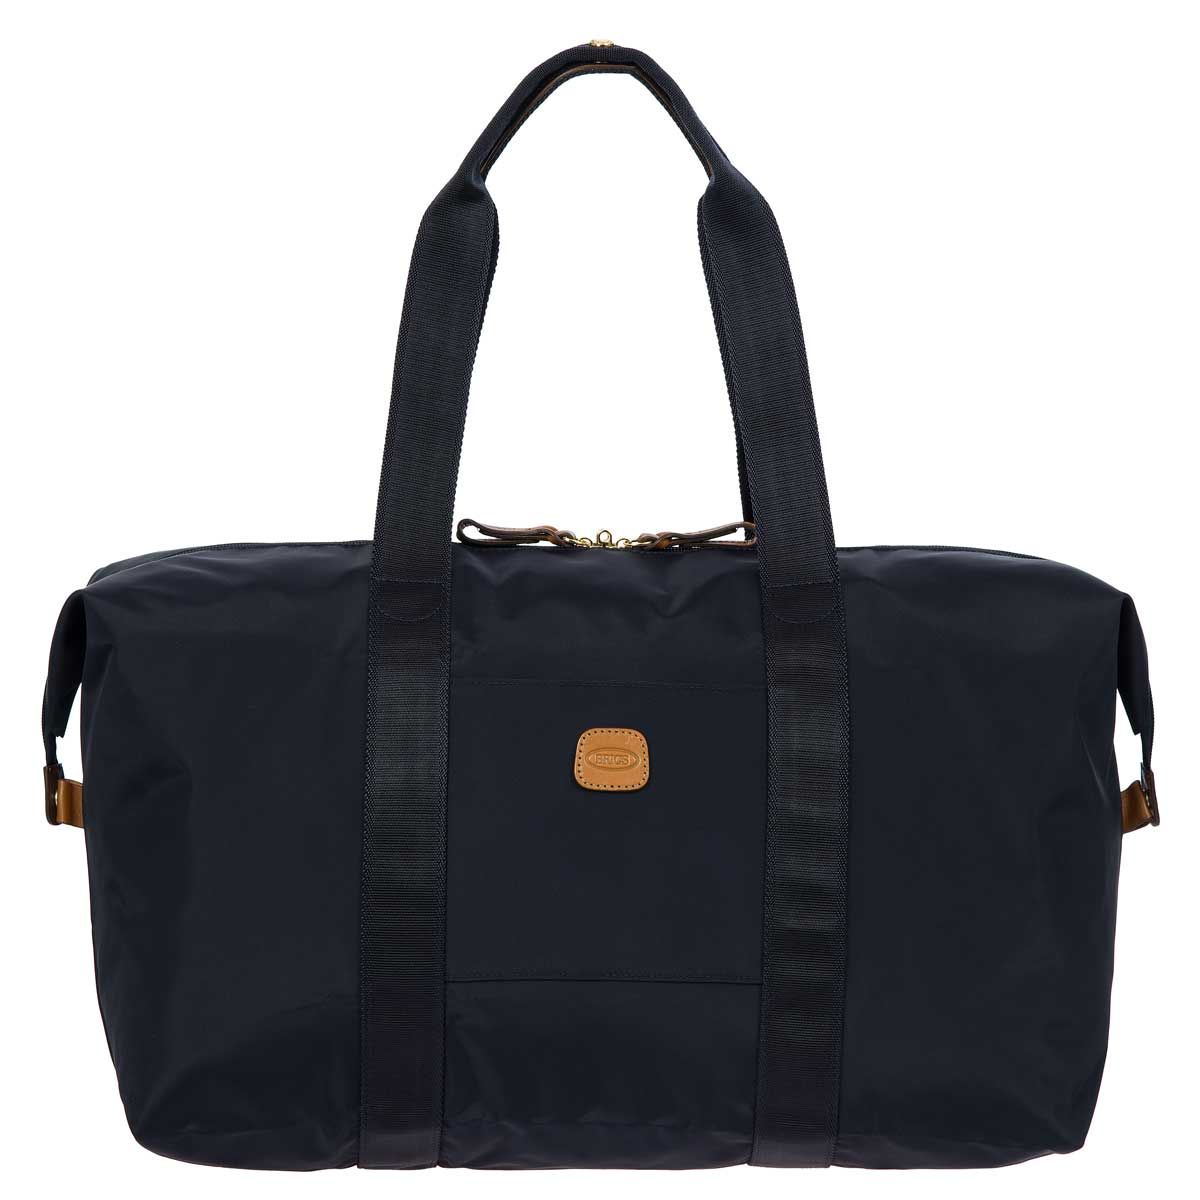 "x-Bag 18"" Folding Duffle by Brics (Color: Navy)"